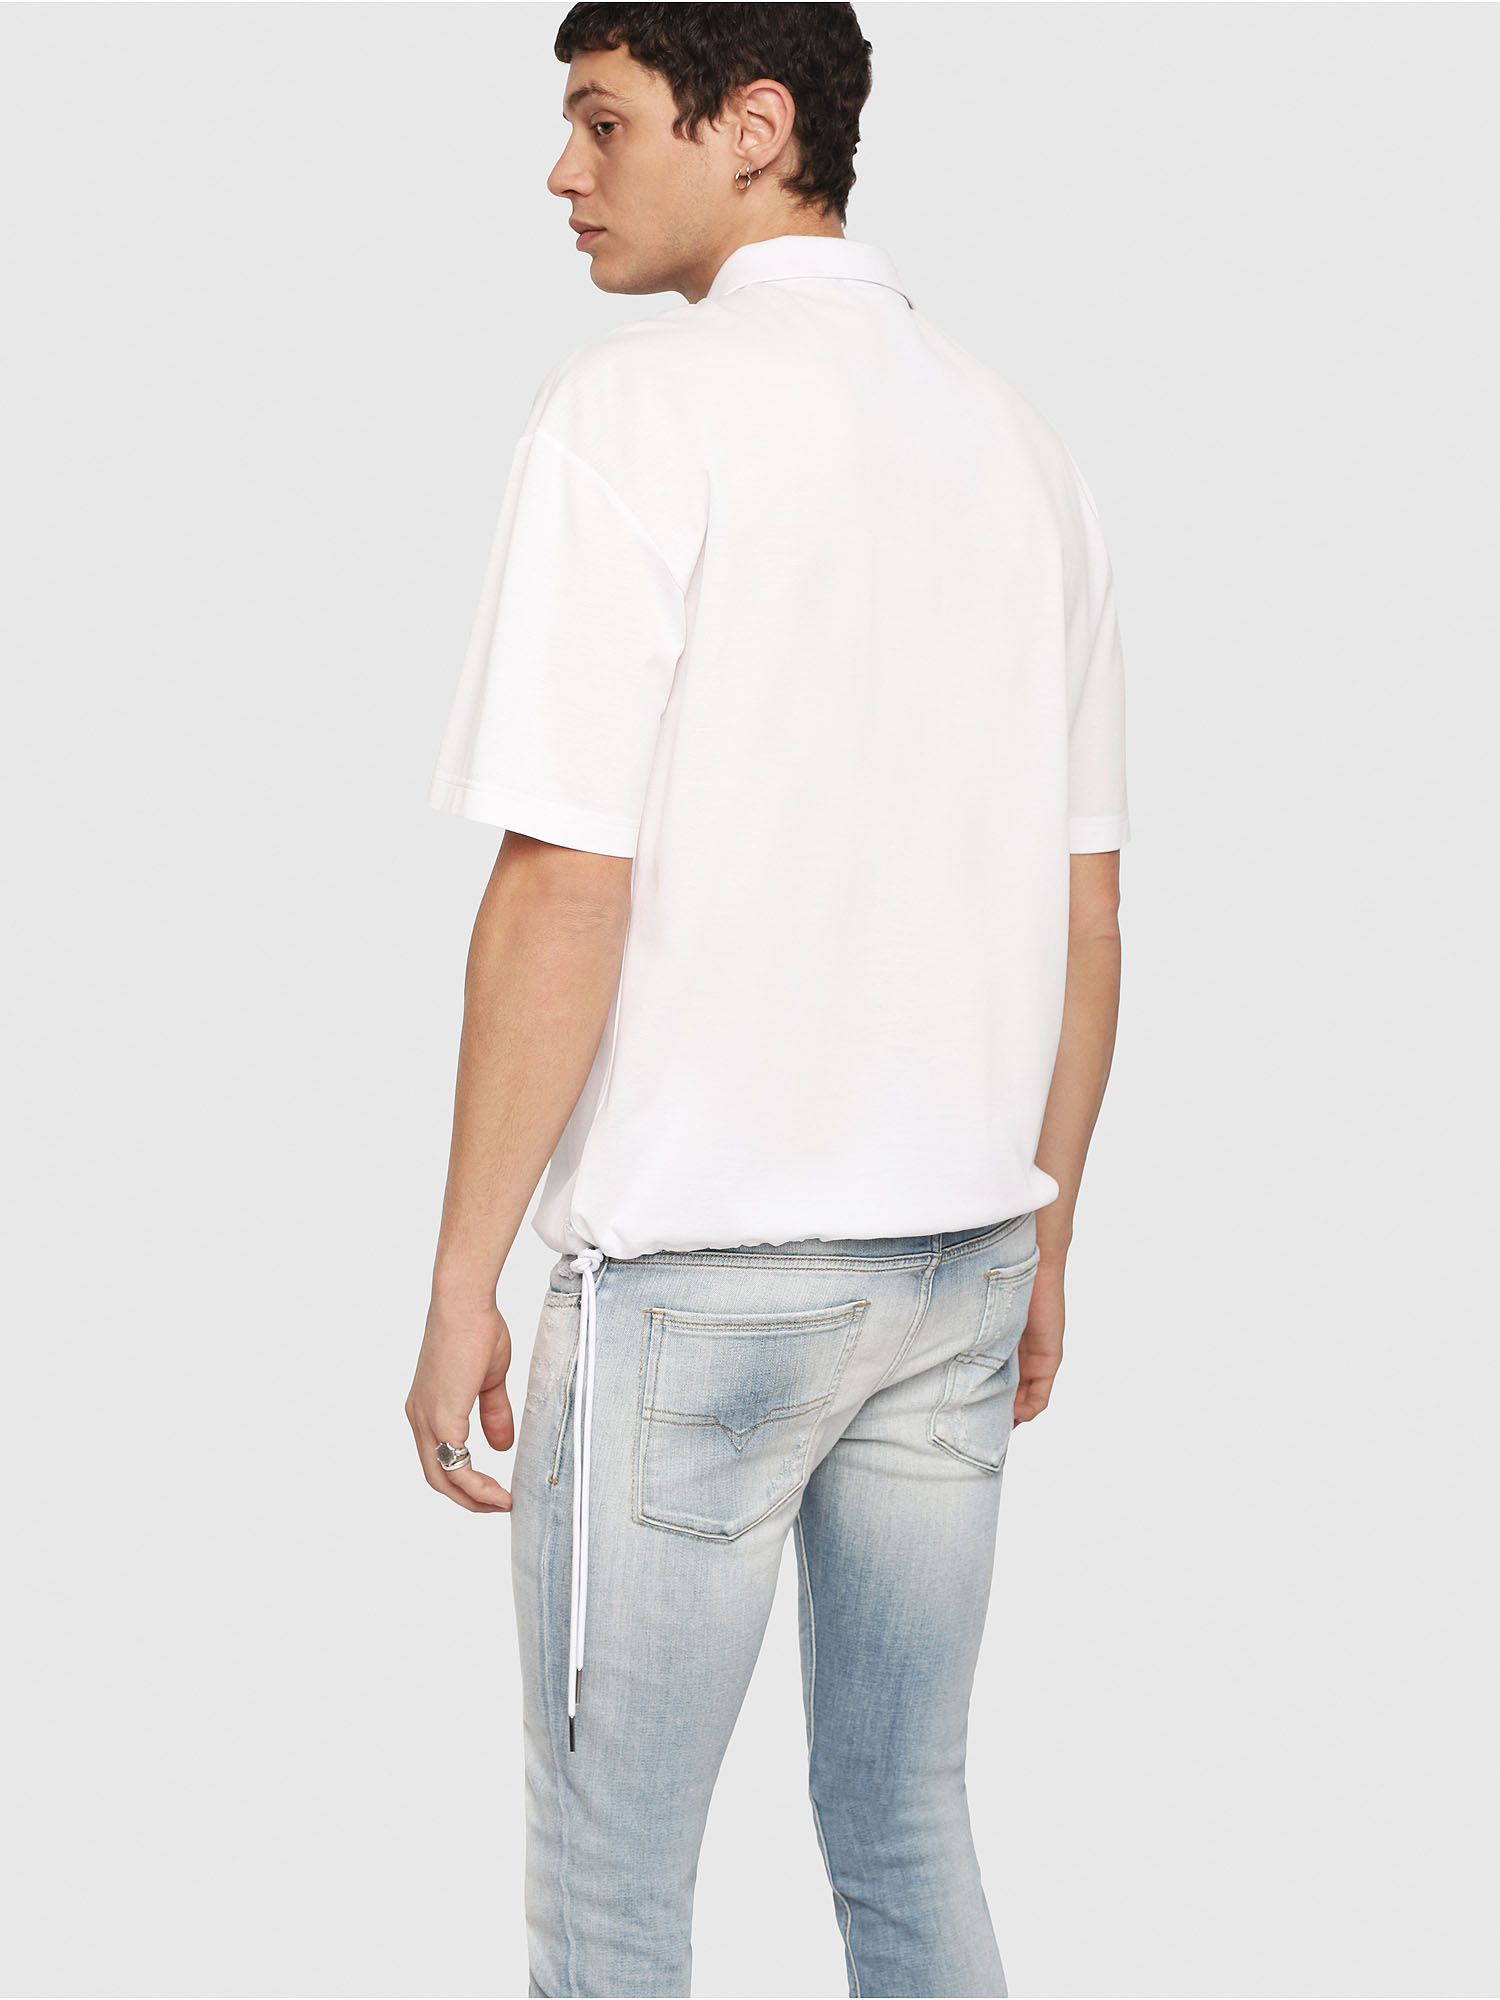 Diesel - T-PLATO,  - Polos - Image 2